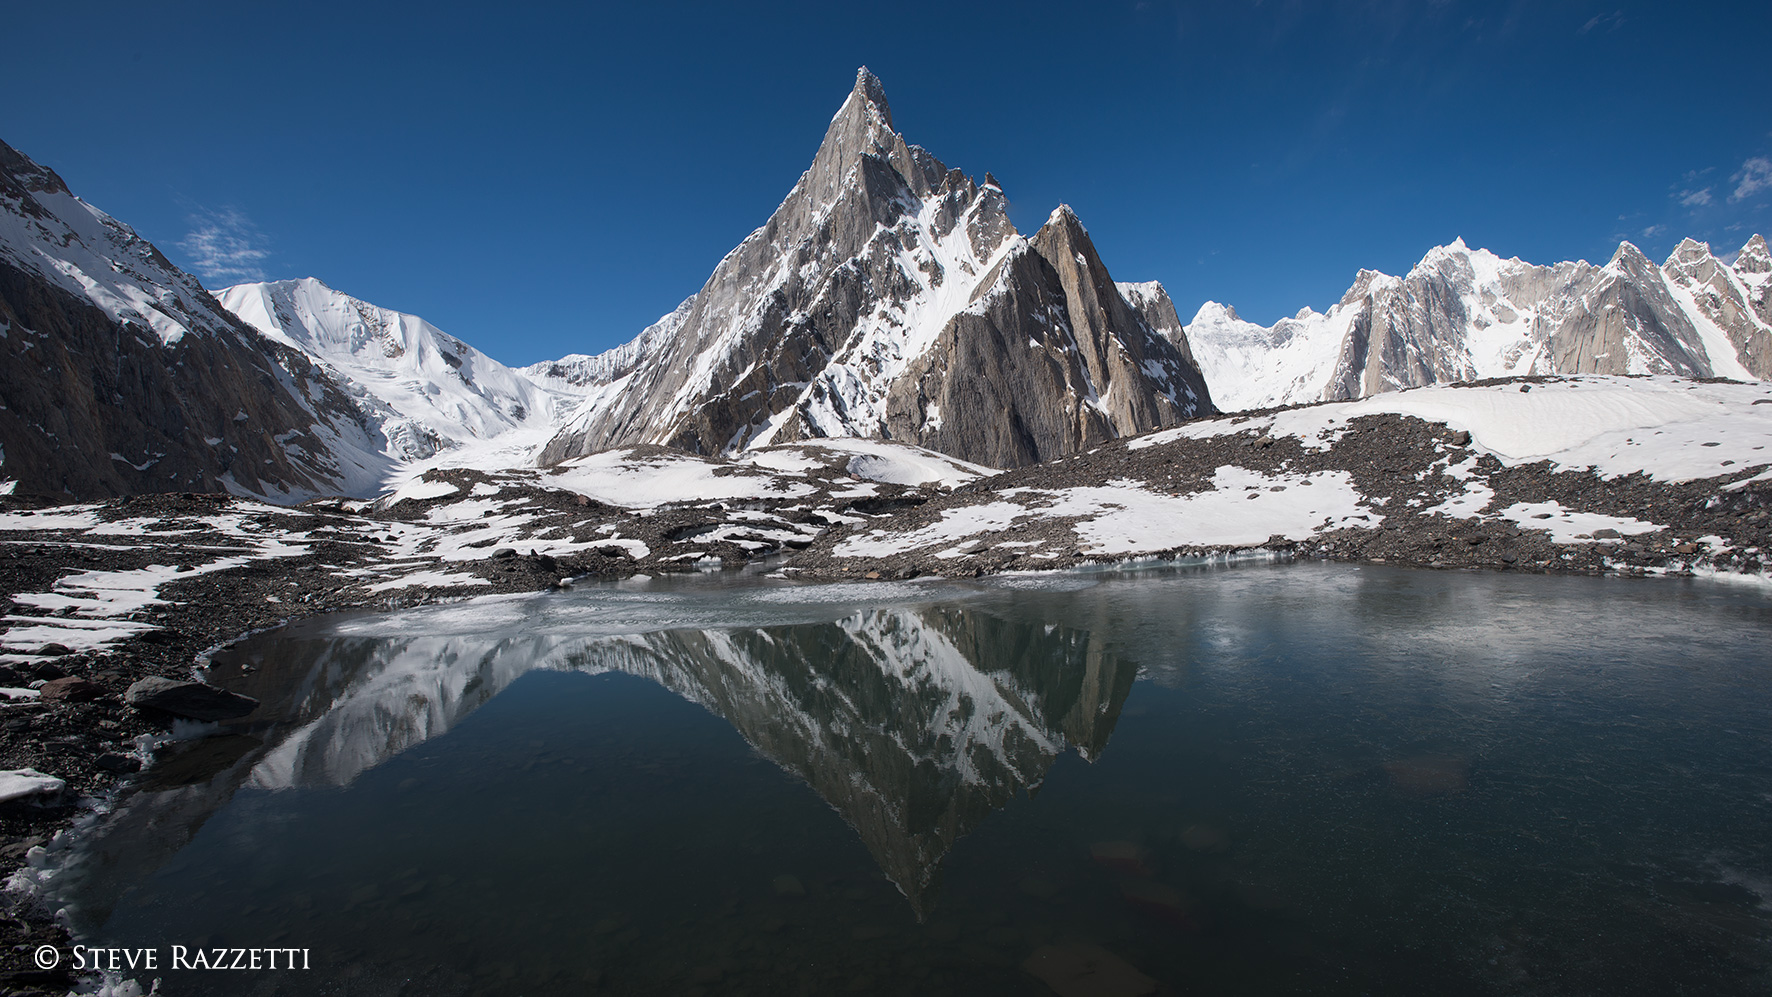 Un named peaks on the southern flanks of the glacier near Goro.